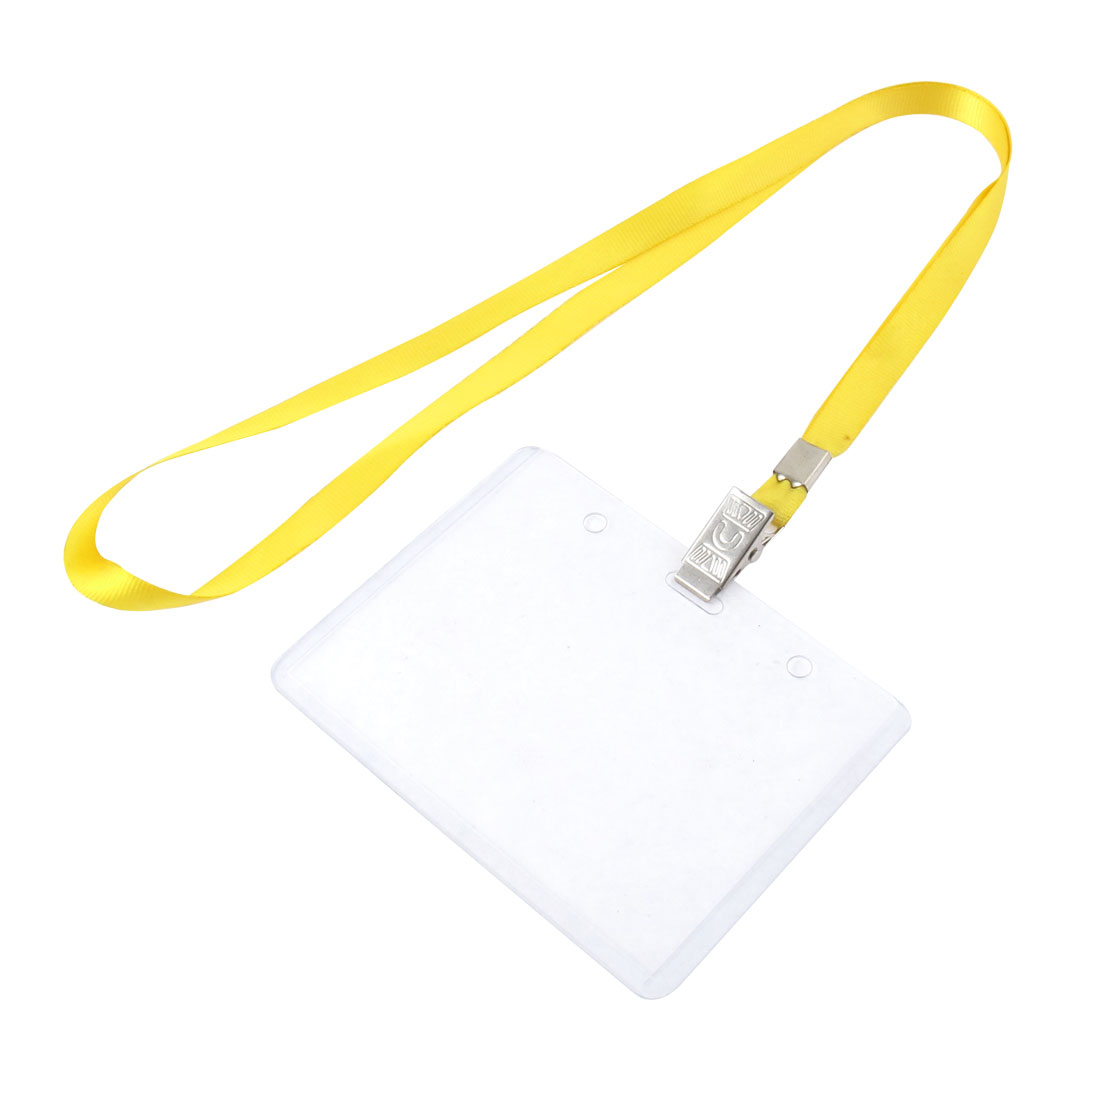 Neck Strap Plastic Horizontal ID Name Employee Card Tag Holder Yellow Clear